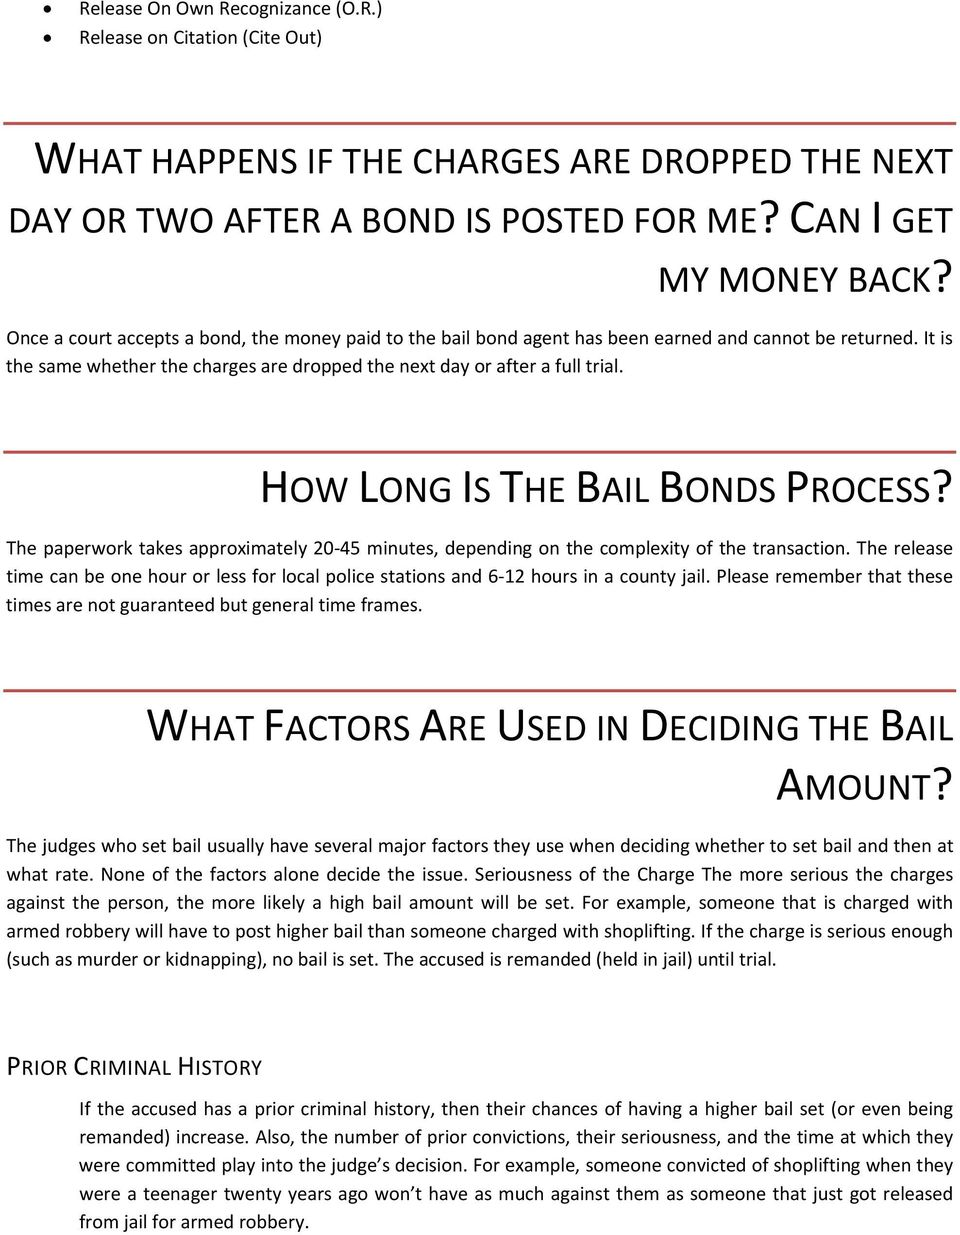 HOW LONG IS THE BAIL BONDS PROCESS? The paperwork takes approximately 20 45 minutes, depending on the complexity of the transaction.